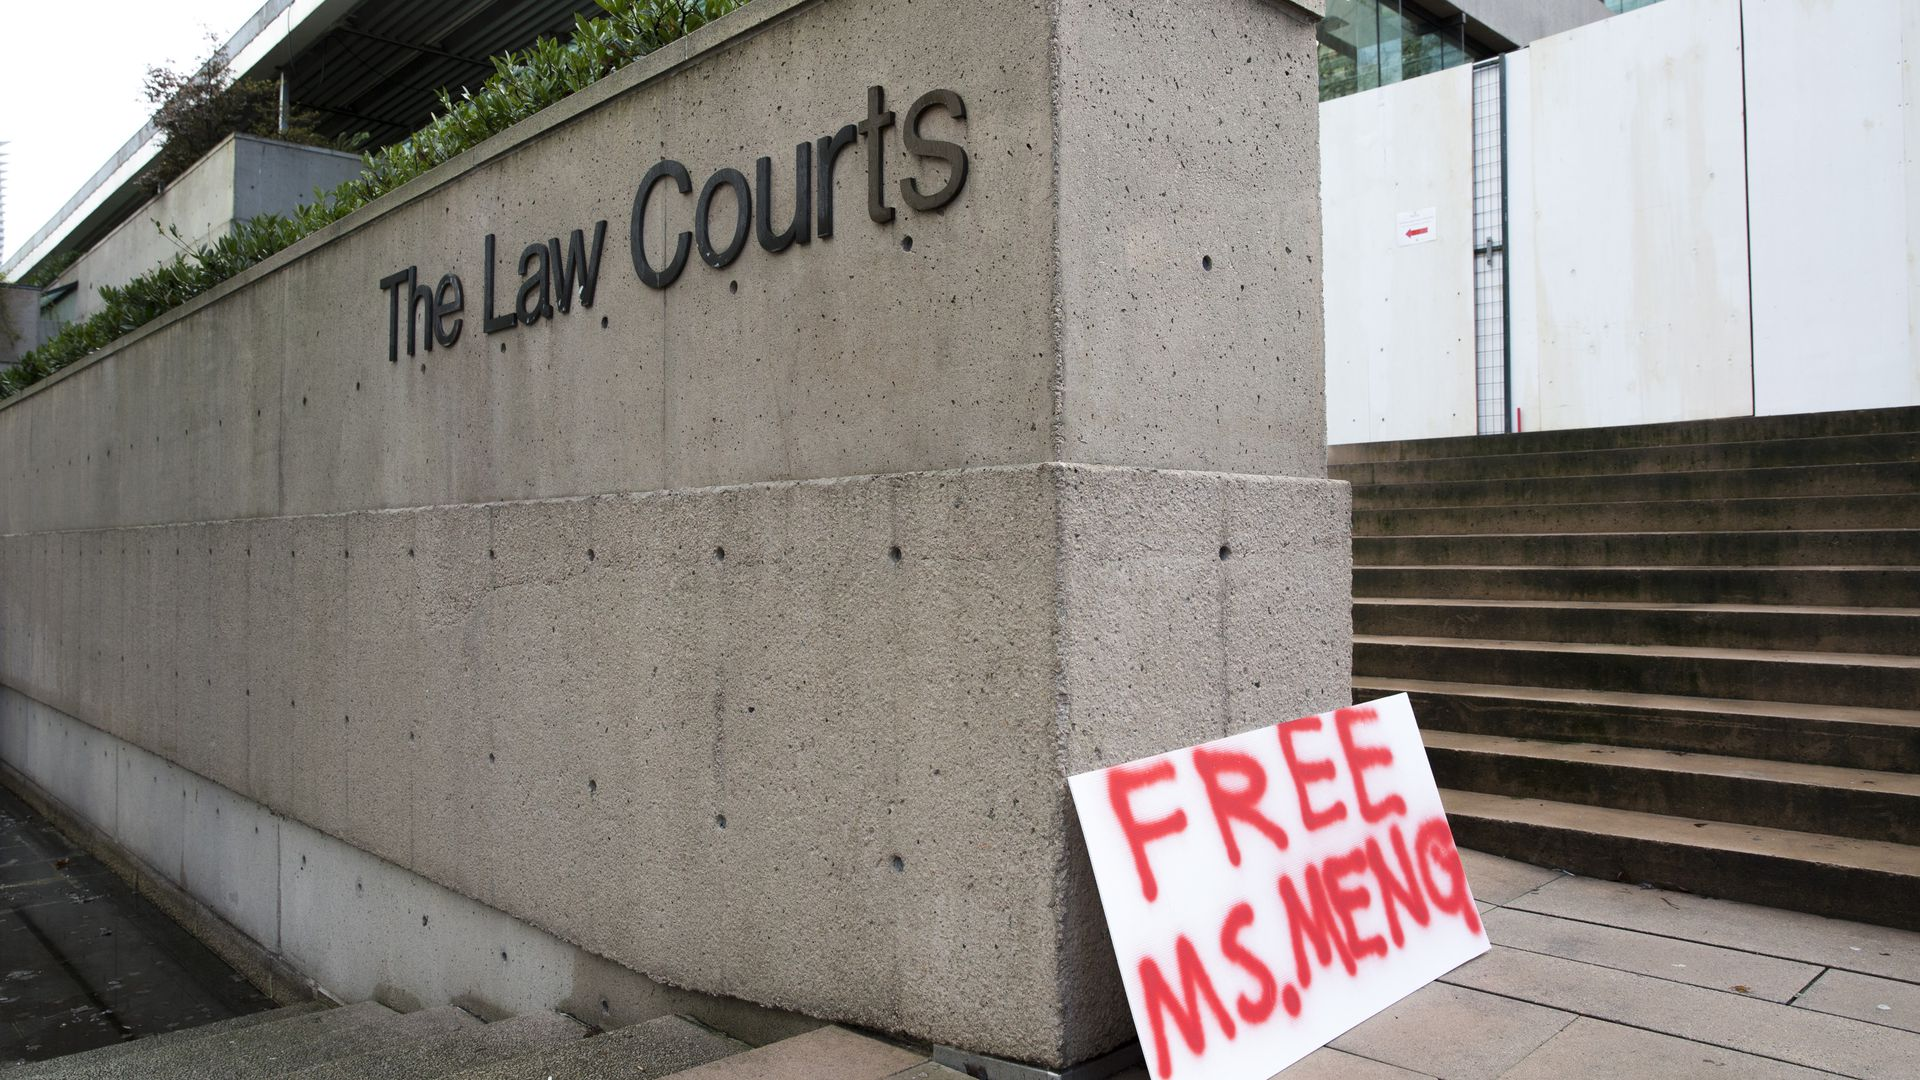 A sign calling for the release of Huawei Technologies Chief Financial Officer Meng Wanzhou is seen outside at British Columbia Superior Courts following her December 1 arrest in Canada